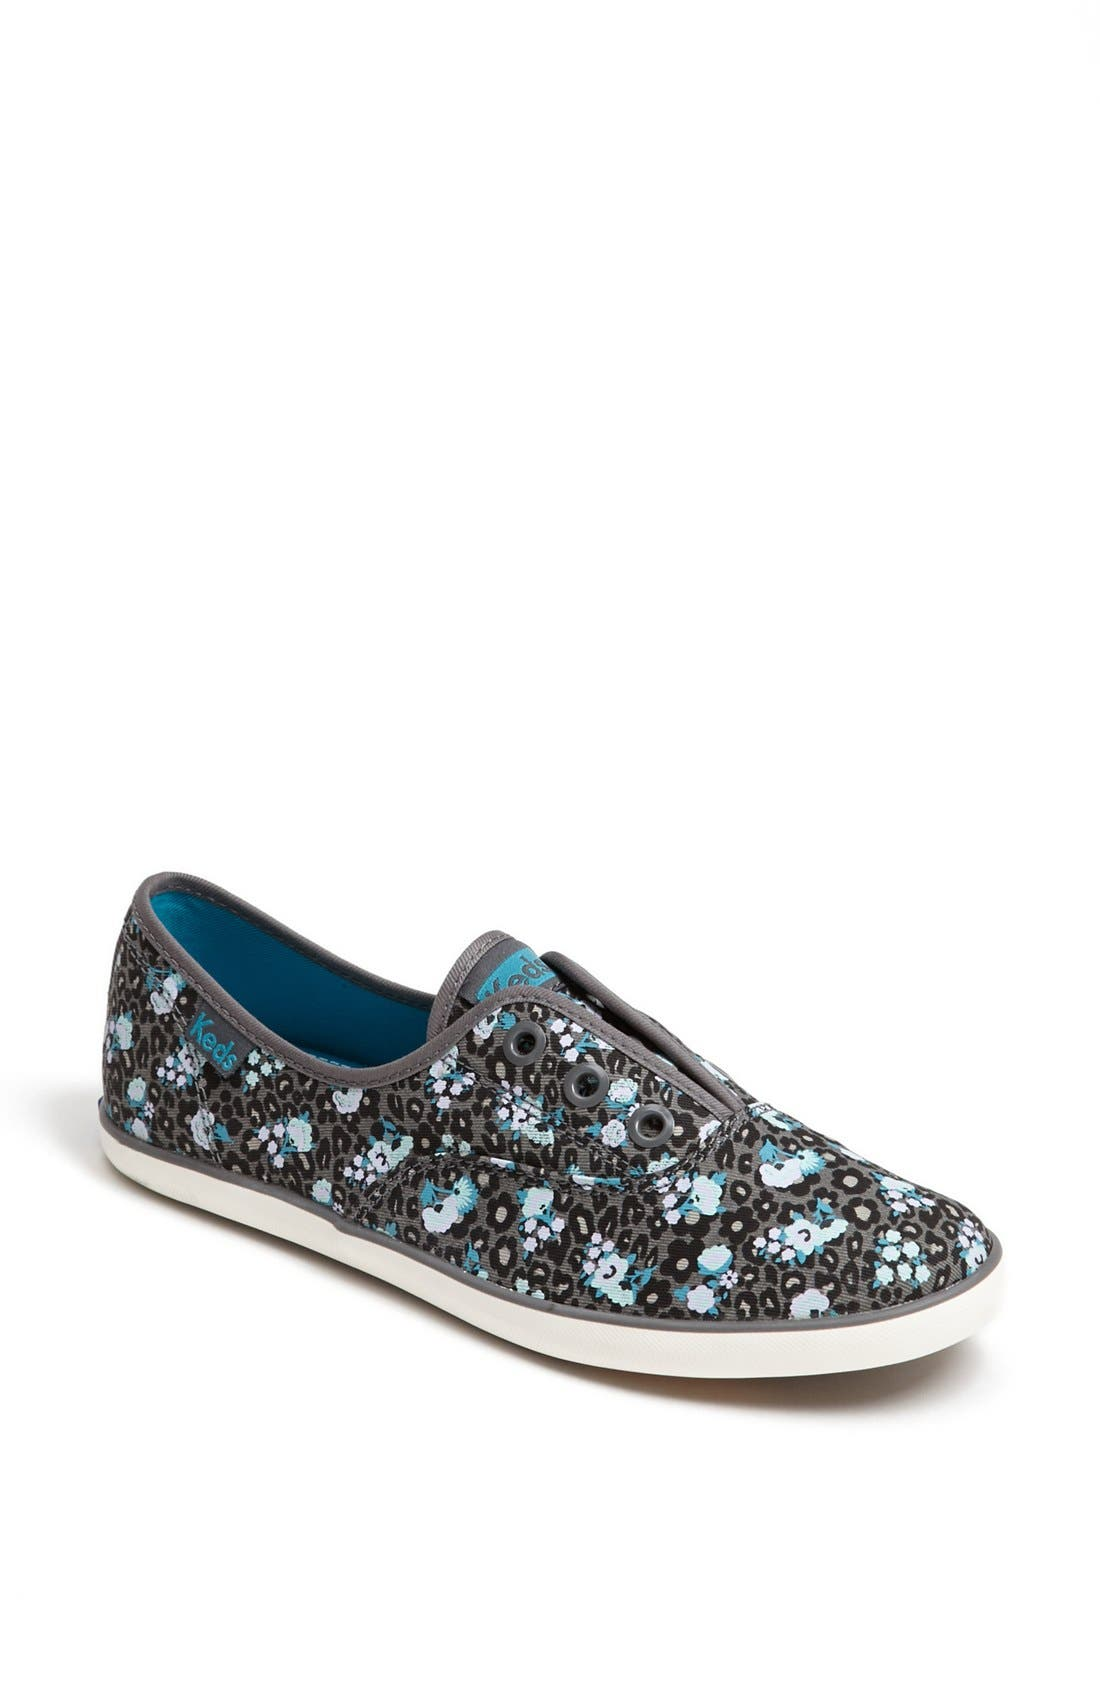 Alternate Image 1 Selected - Keds® 'Rookie - Leopard Floral' Laceless Sneaker (Women)